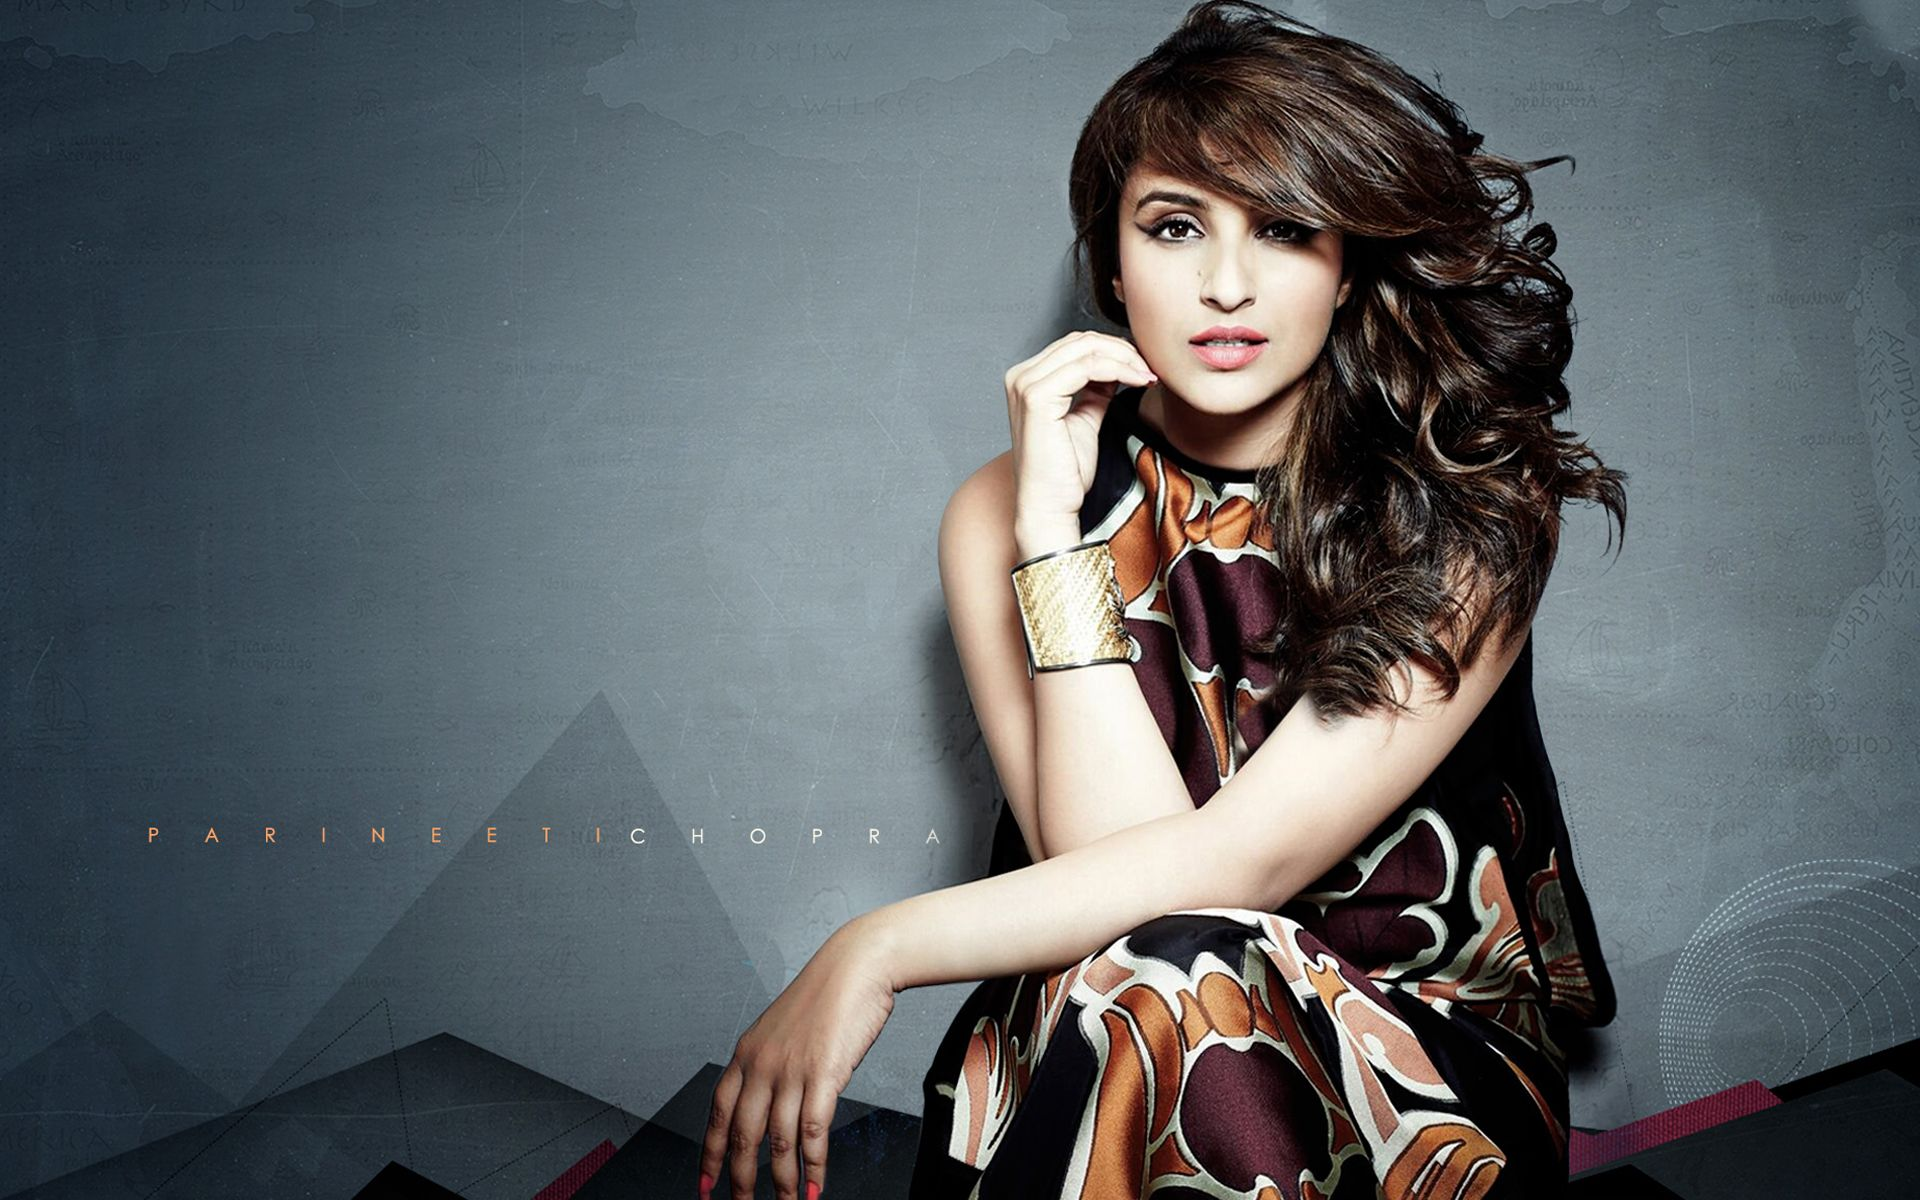 2015 sexy parineeti chopra pics photos hd parineeti - Parineeti chopra wallpapers for iphone ...